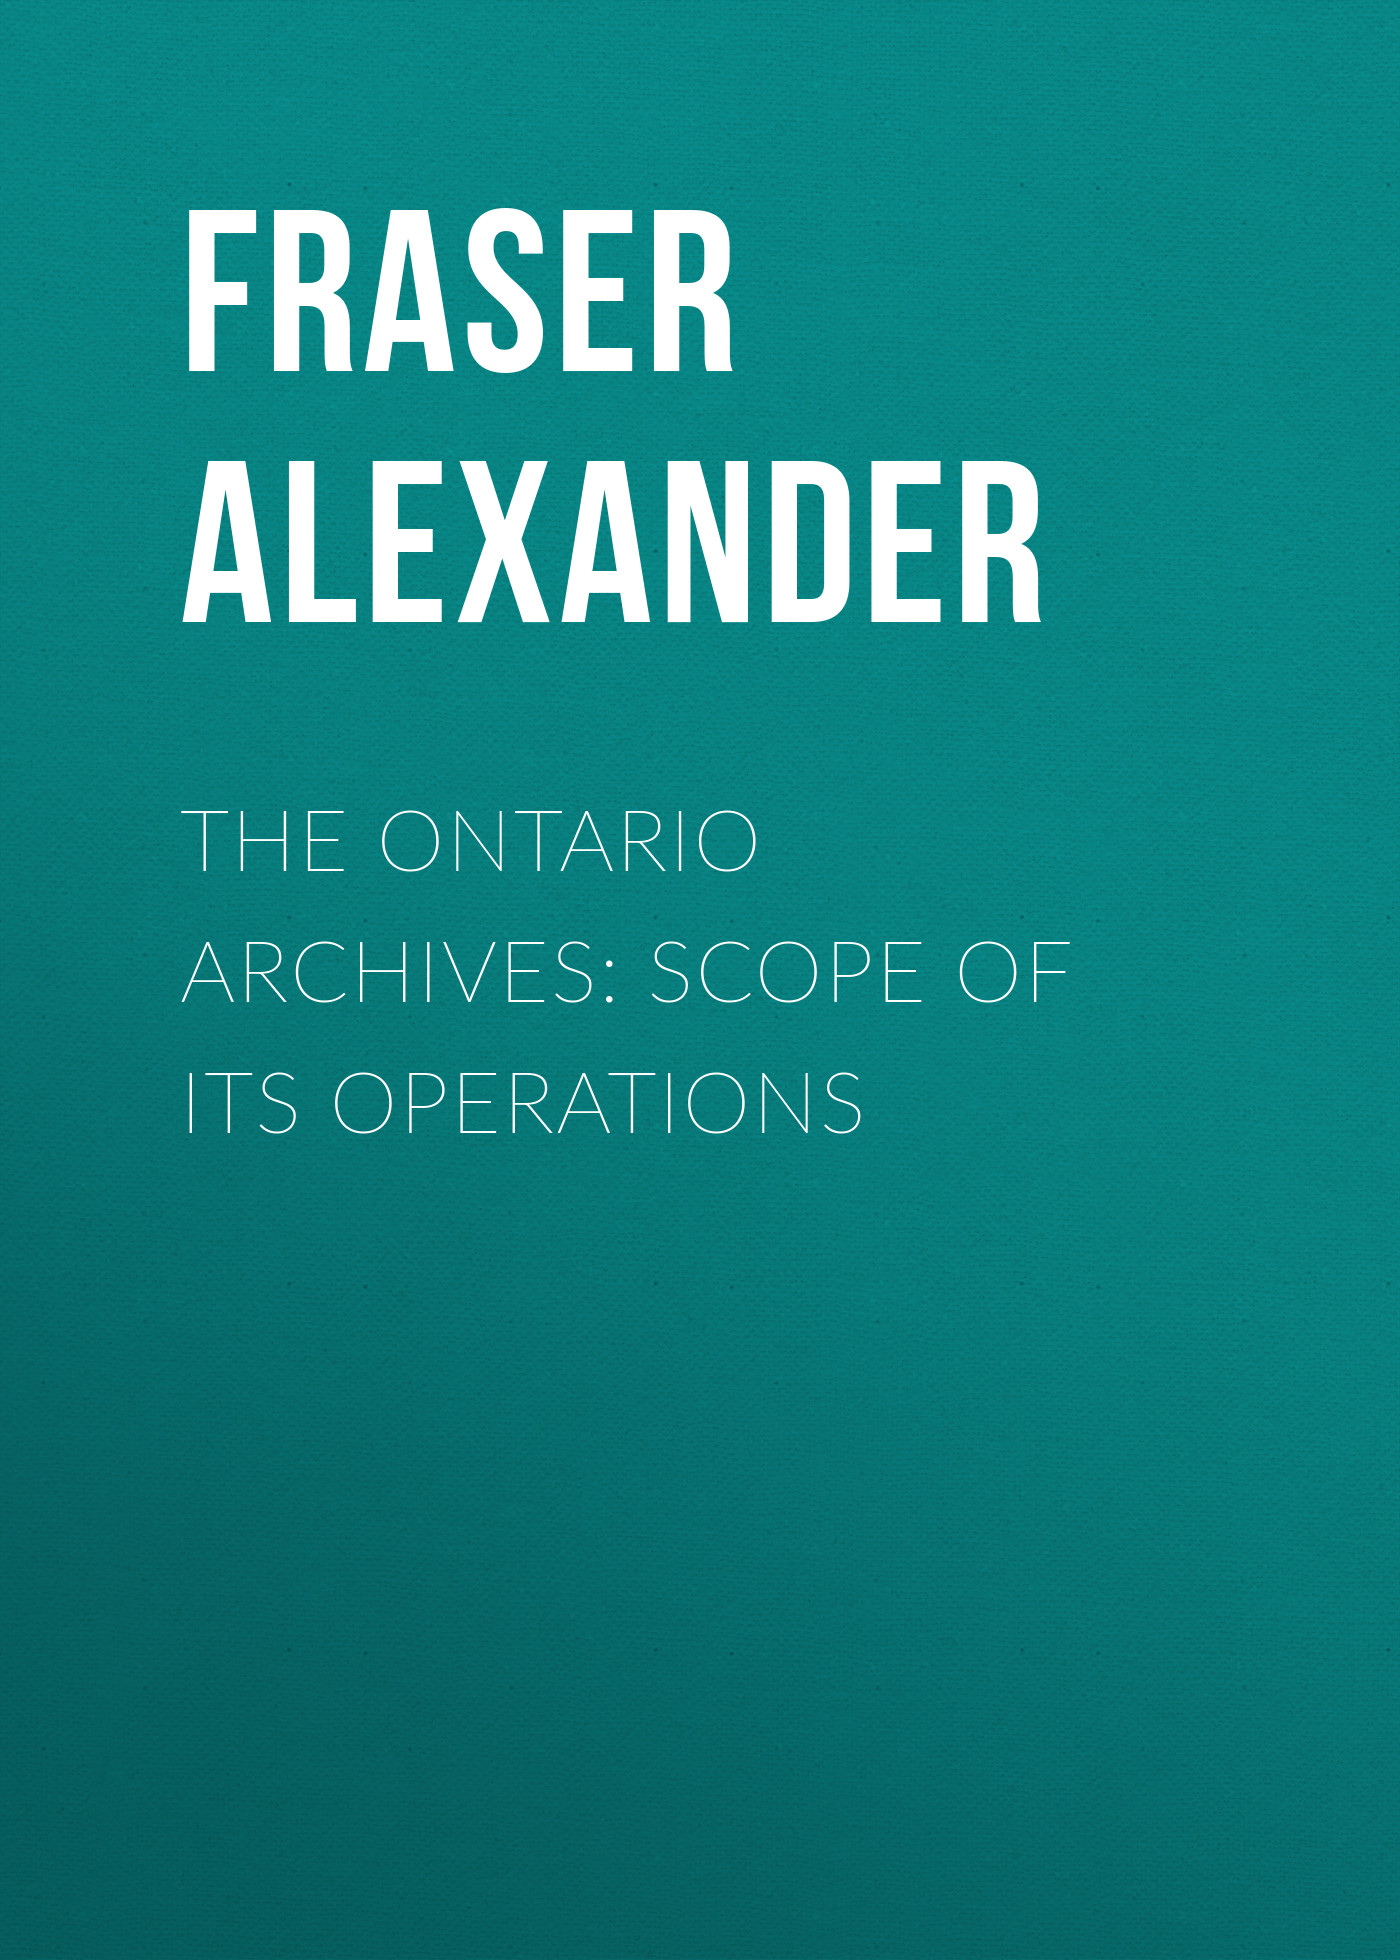 Fraser Alexander The Ontario Archives: Scope of its Operations the national archives the gunpowder plot unclassified